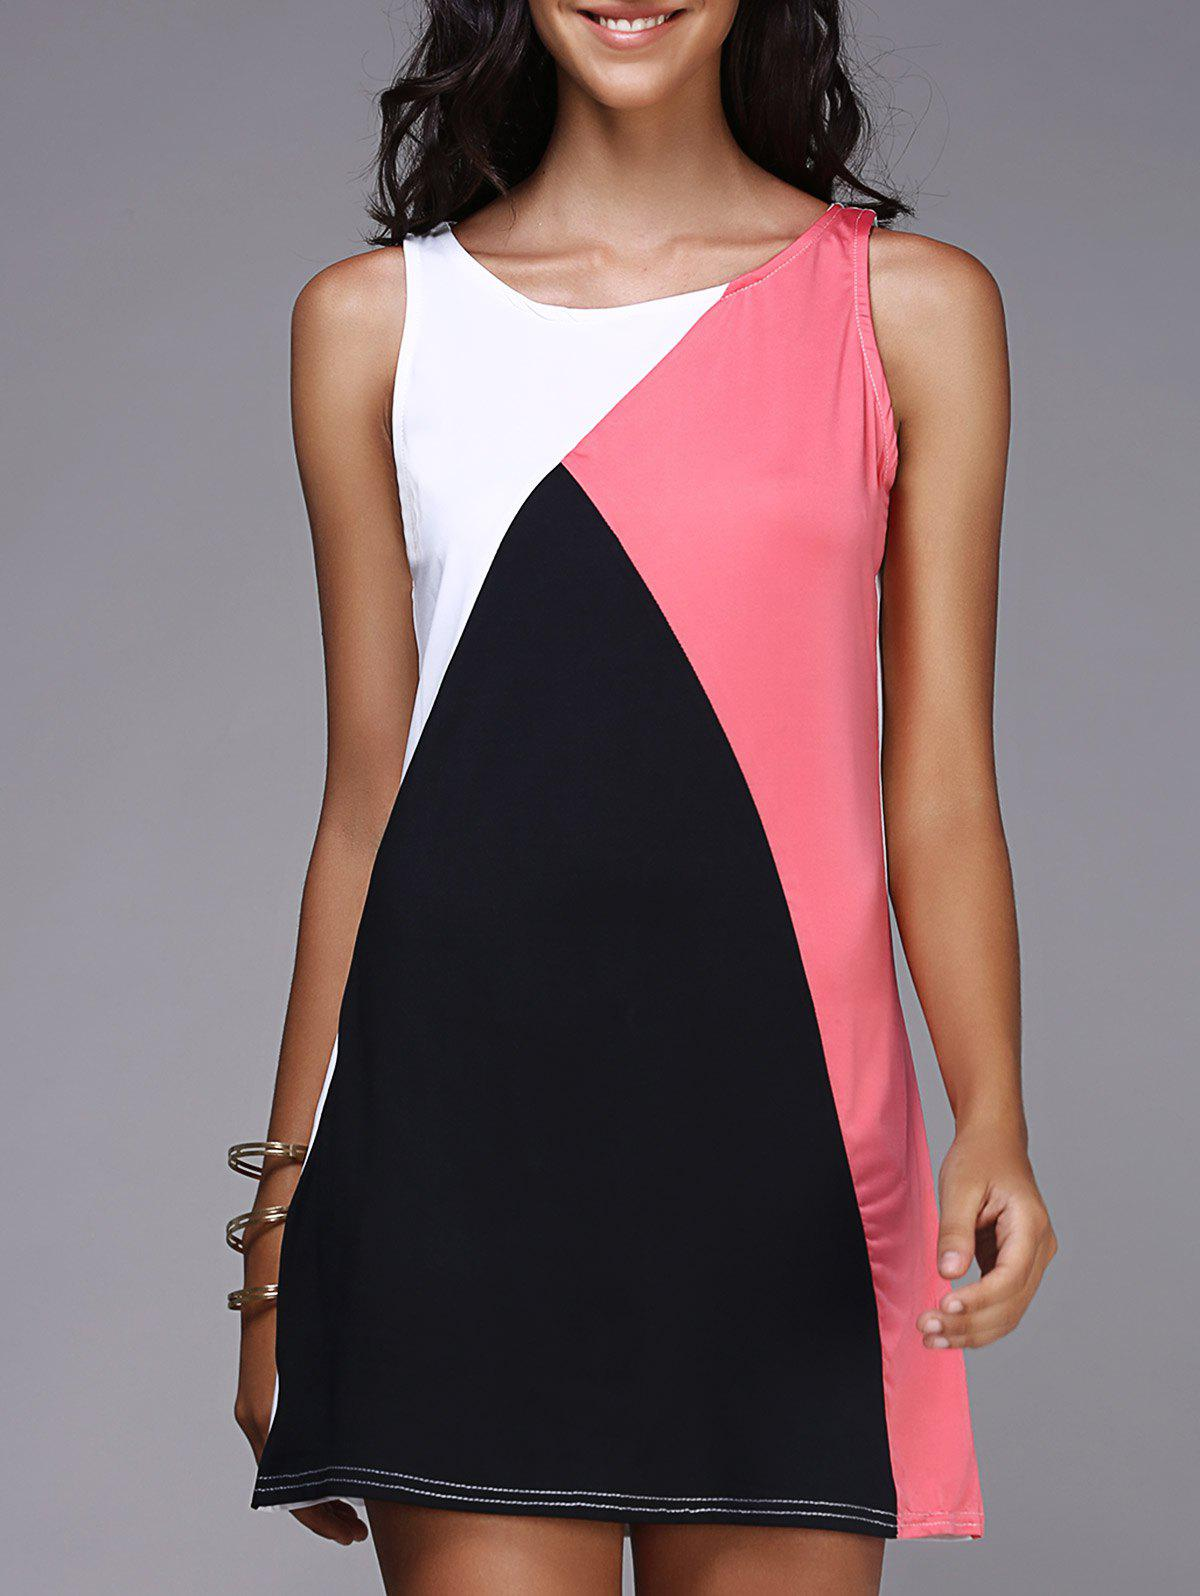 Tank Color Block Casual Daytime Dress OutfitWOMEN<br><br>Size: S; Color: BLACK AND PINK; Style: Casual; Material: Polyester; Silhouette: A-Line; Dresses Length: Mini; Neckline: Round Collar; Sleeve Length: Sleeveless; Pattern Type: Others; With Belt: No; Season: Summer; Weight: 0.153kg; Package Contents: 1 x Dress;